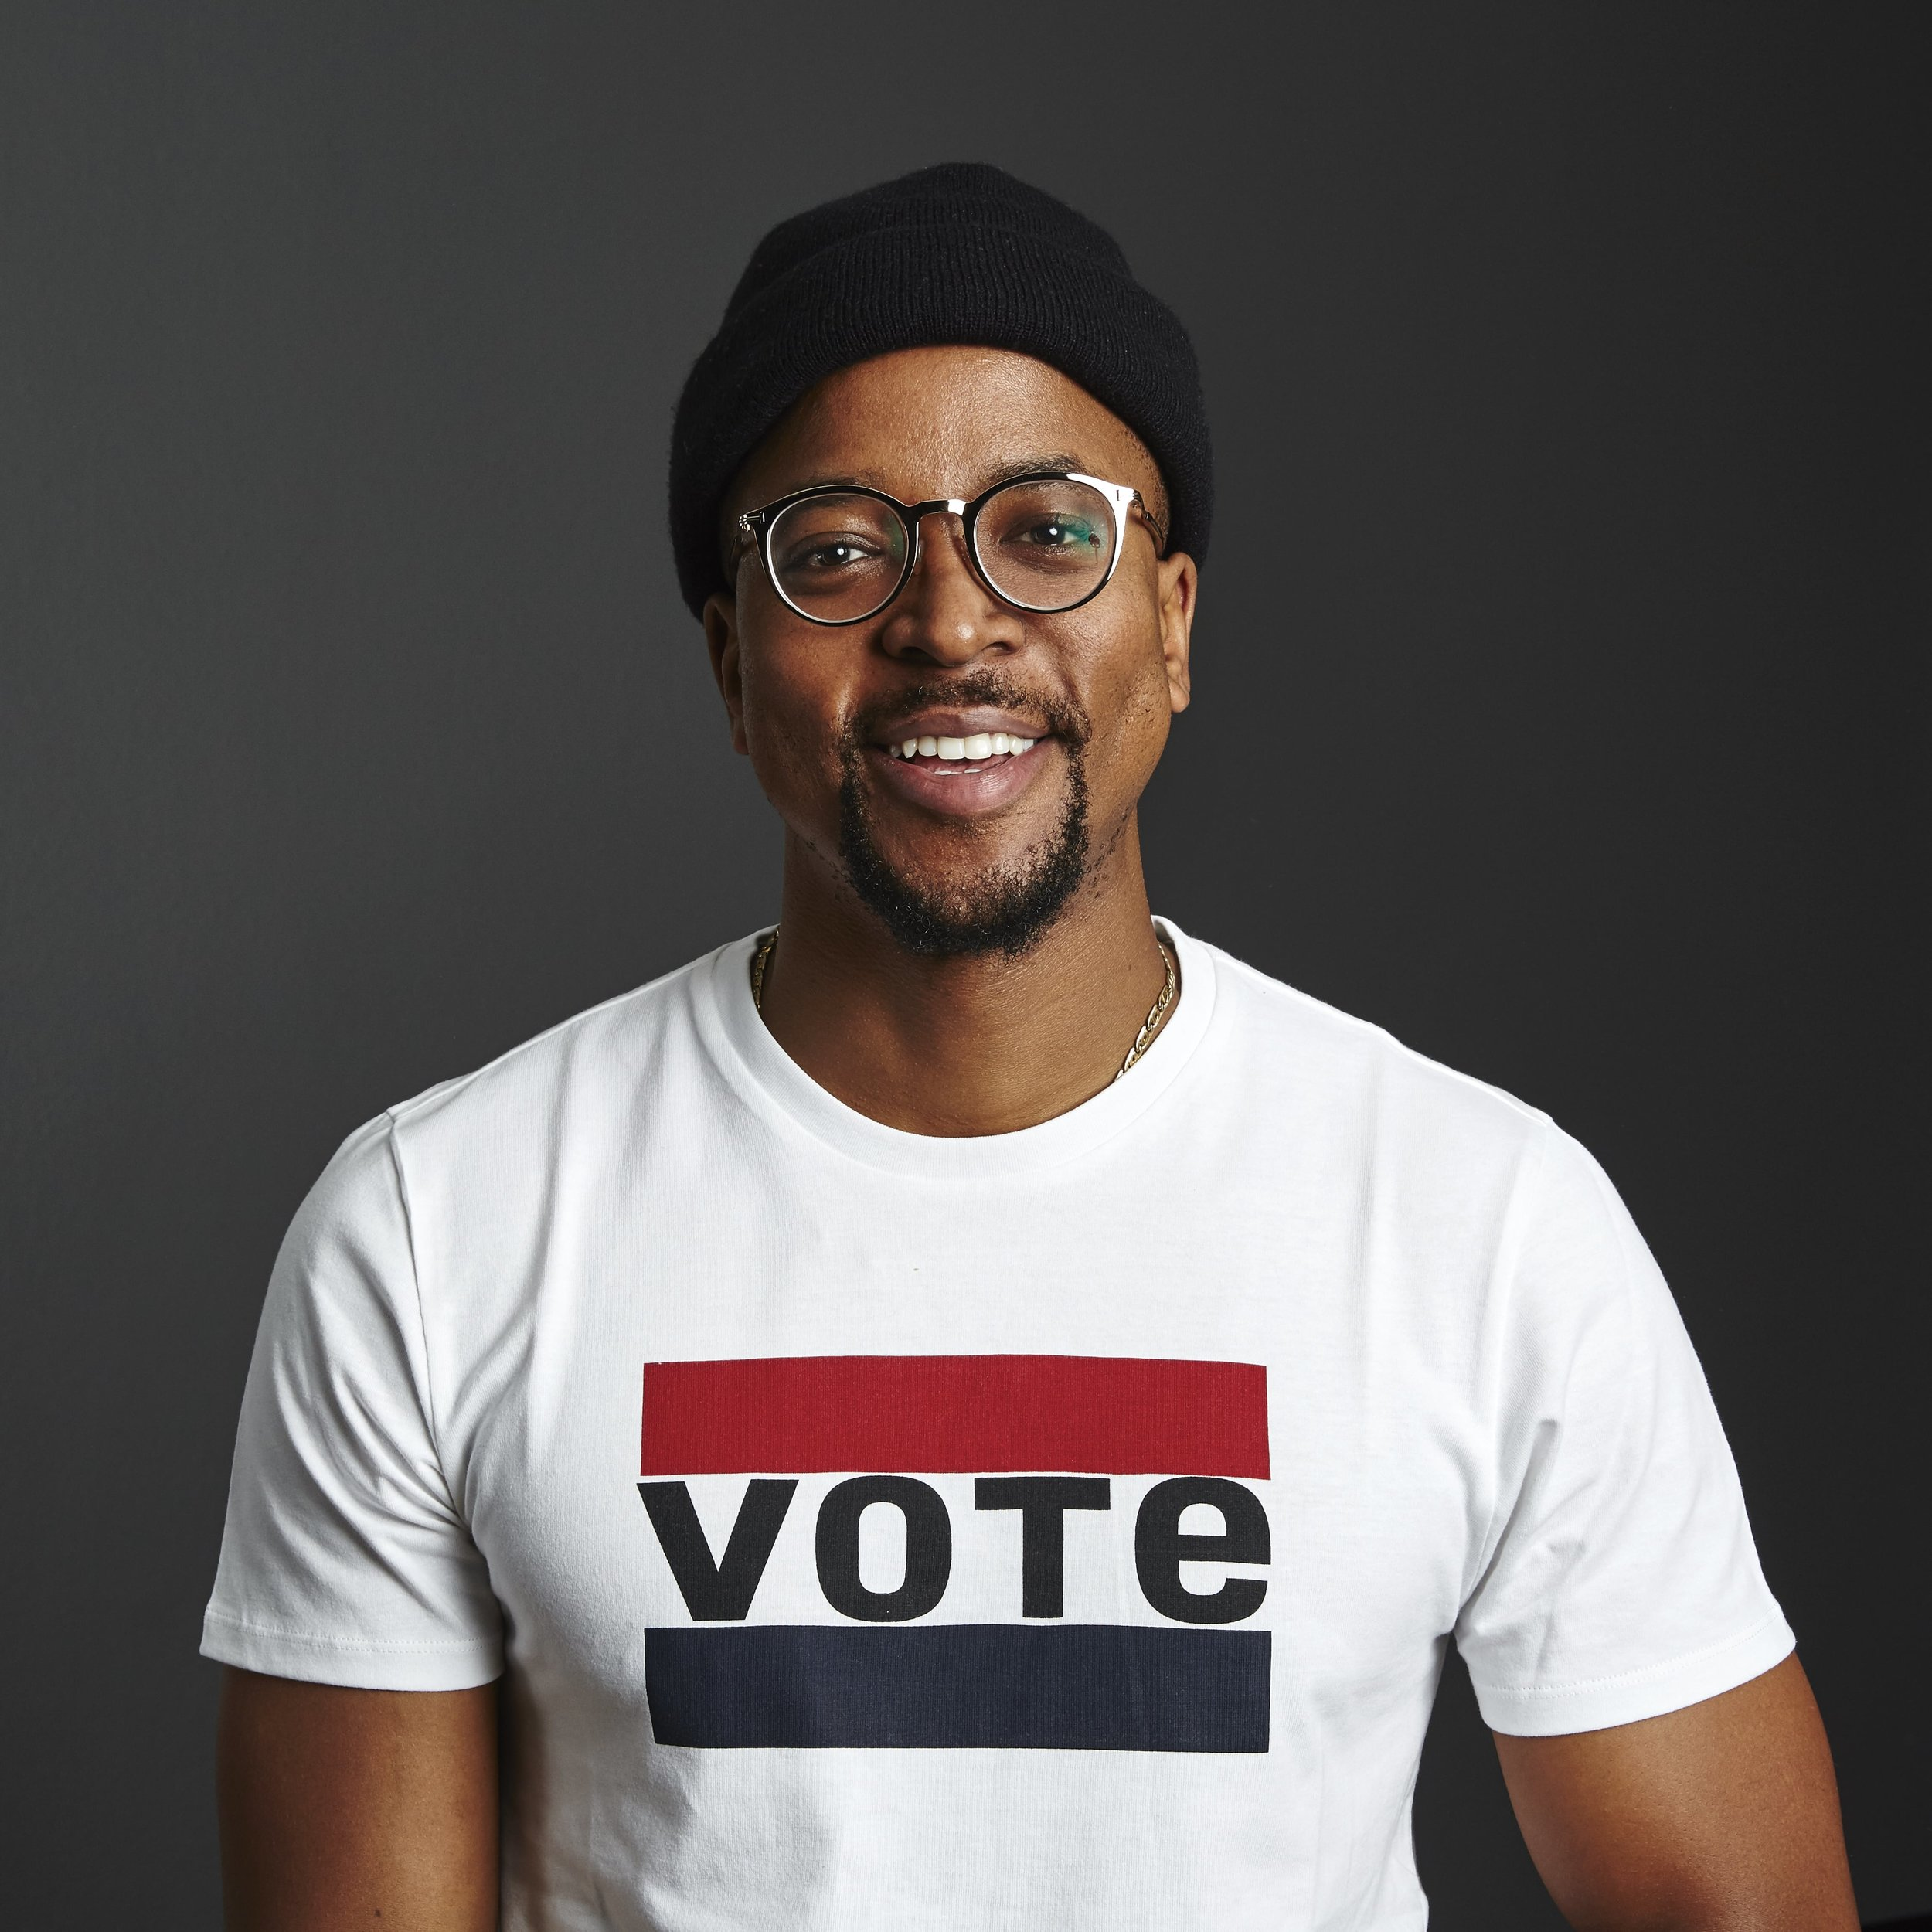 """Let us not take for granted the power that each and every one of our votes hold, to determine the future of our country. Voting is a privilege that honours those that fought, to grant us that right. On the 8th of May let's go to the election polls in our numbers and ensure our voices are heard! It's our responsibility."" - Maps Maponyane"